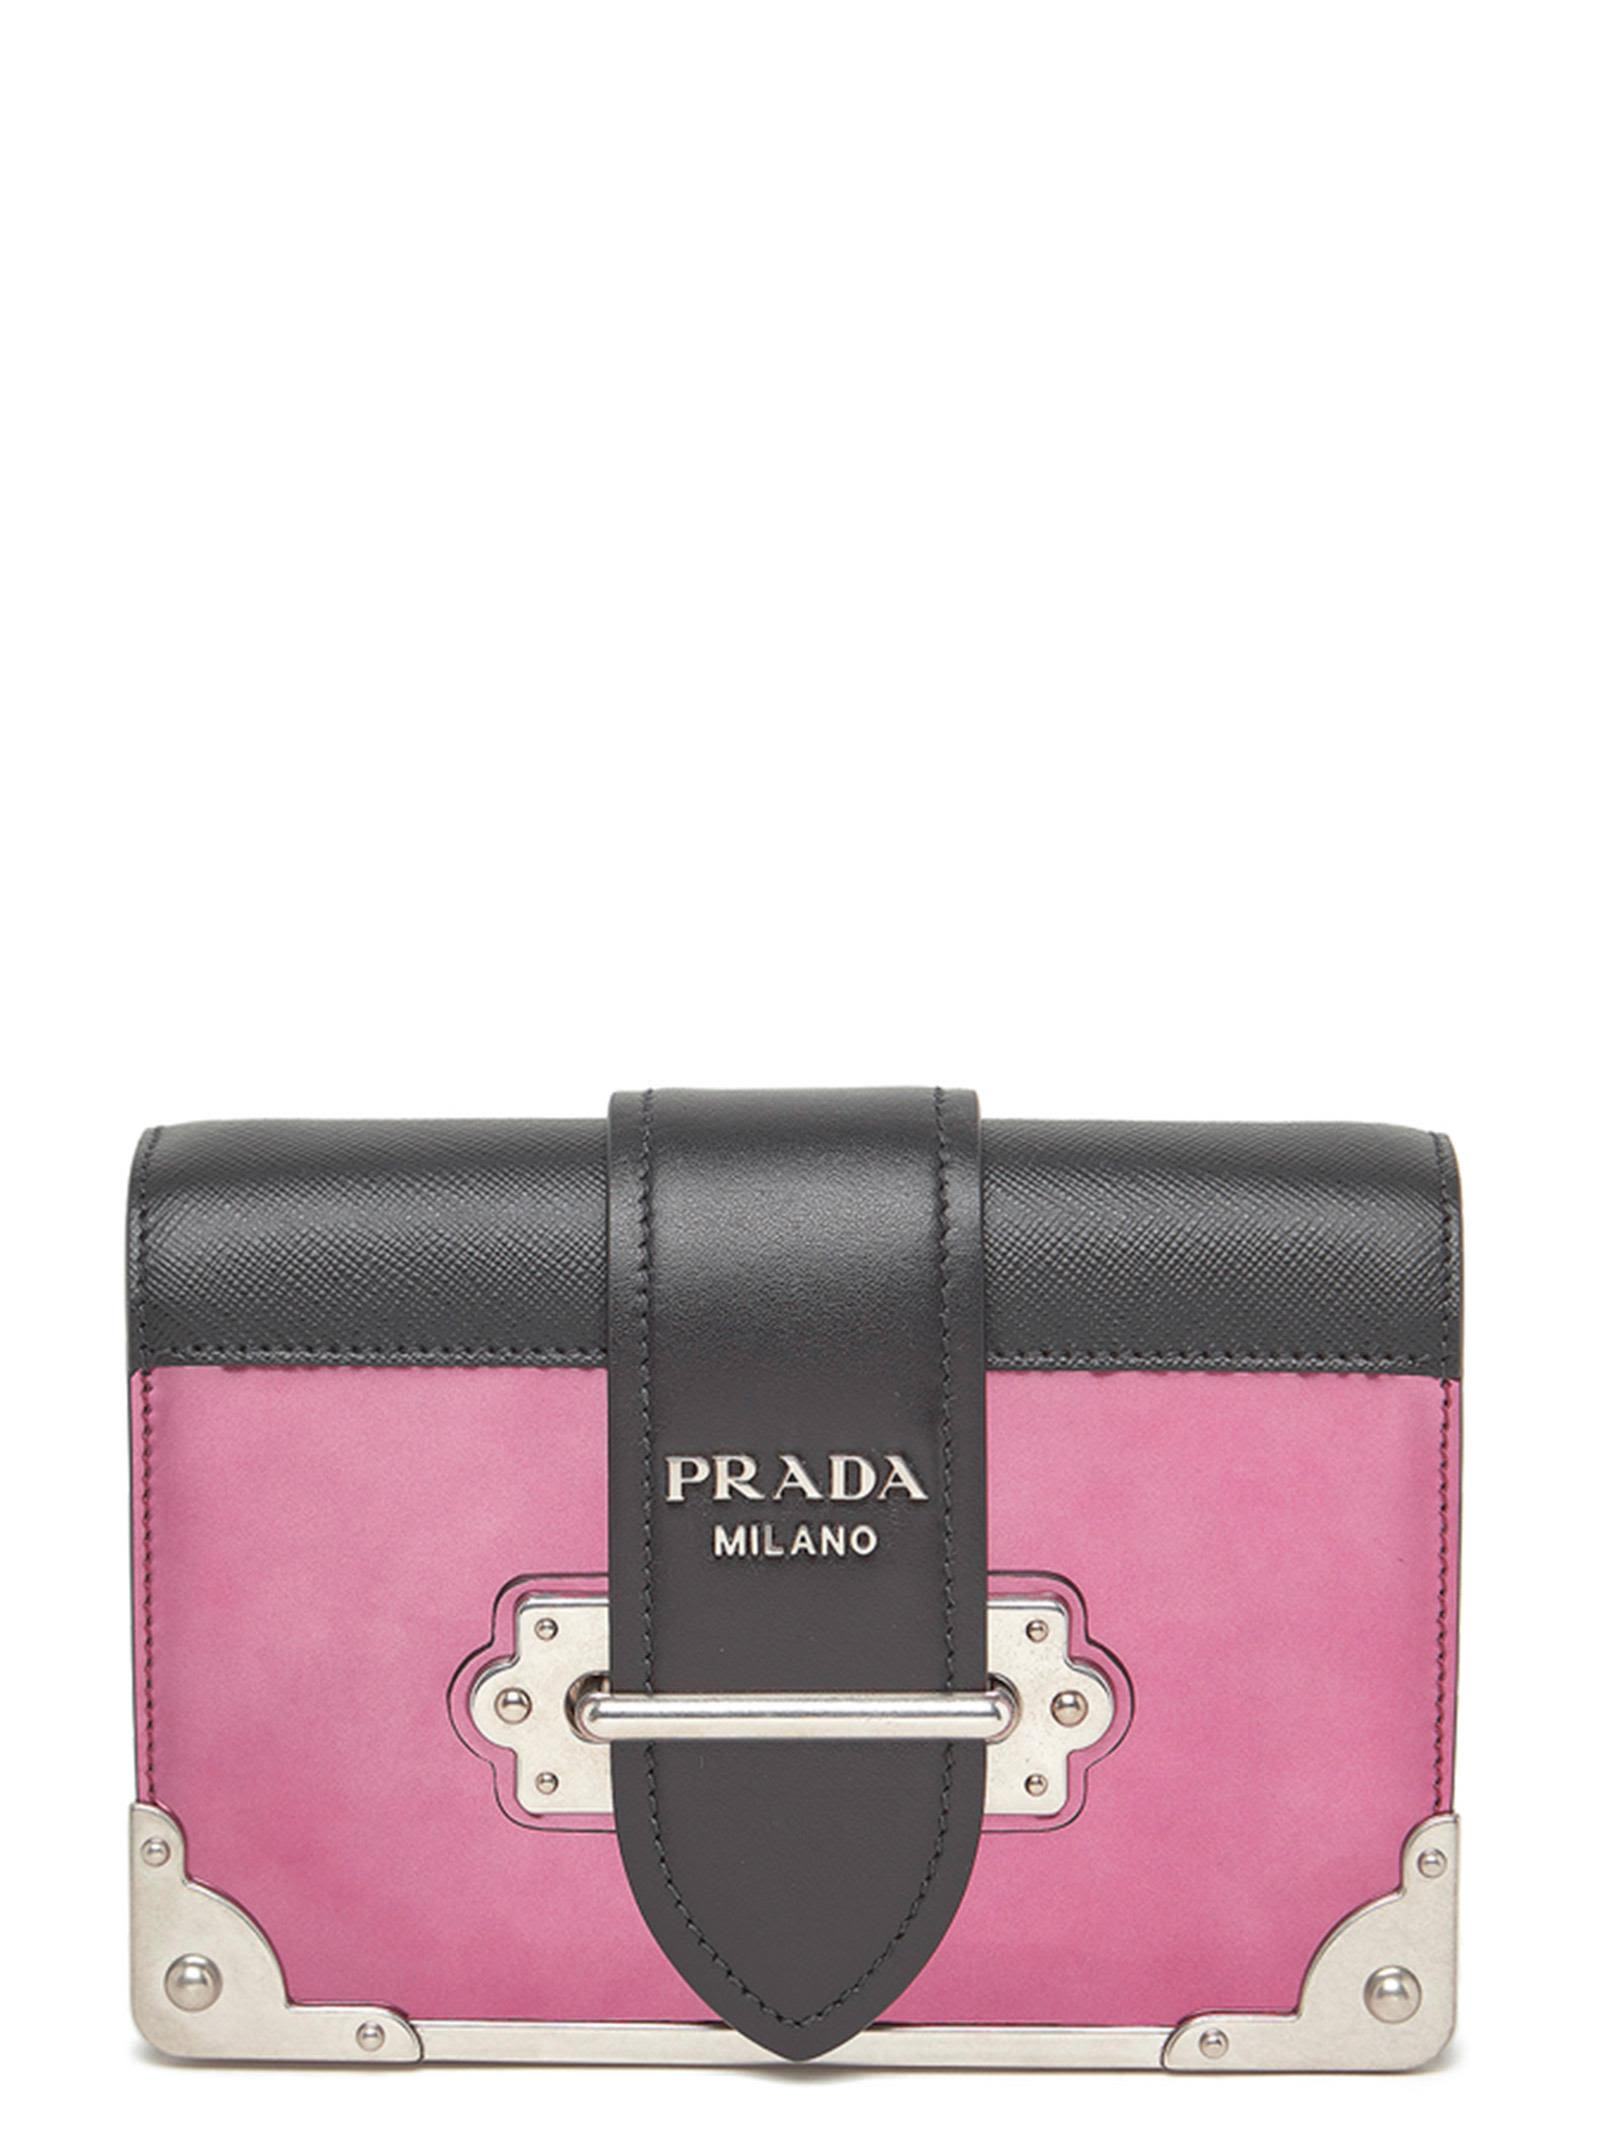 12fdbc8415c3 ... discount code for prada cahier bag 0ffe4 8b500